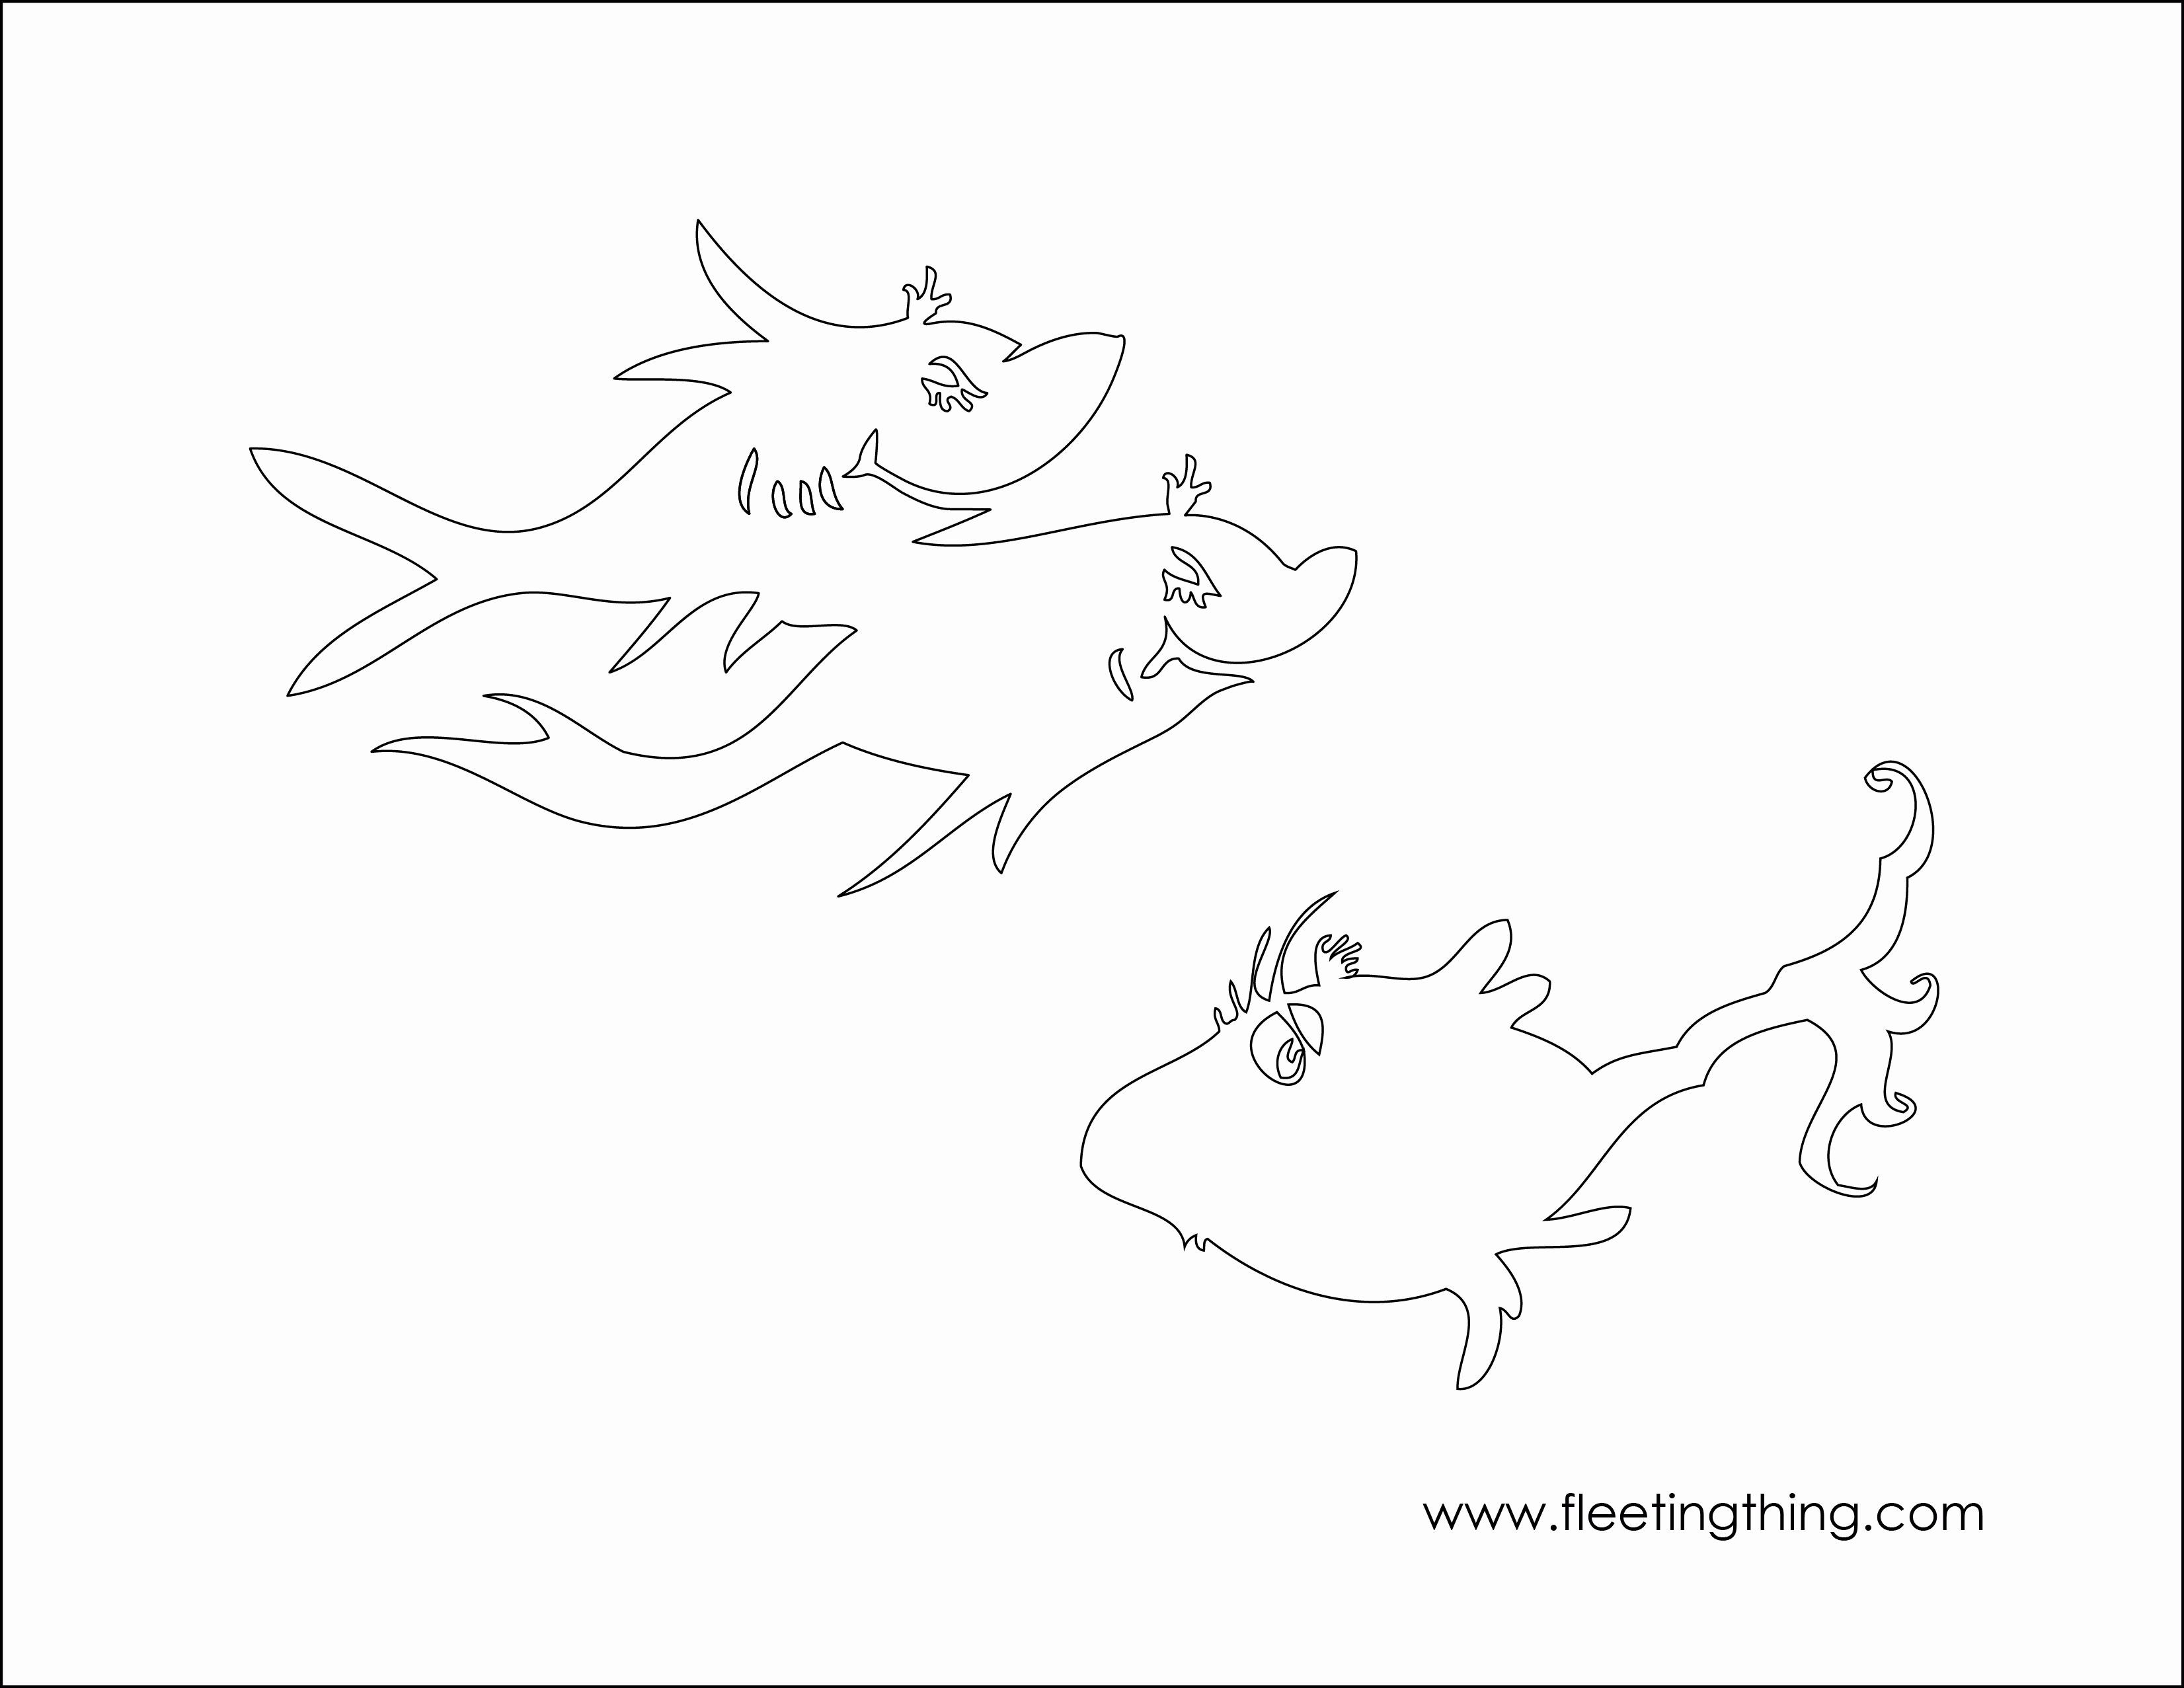 Dr Seuss Fish Coloring Page Best Of Free Coloring Pages Dr Seuss Characters Coloring Home Southwest Fish Coloring Page Coloring Pages Coloring Pages For Kids